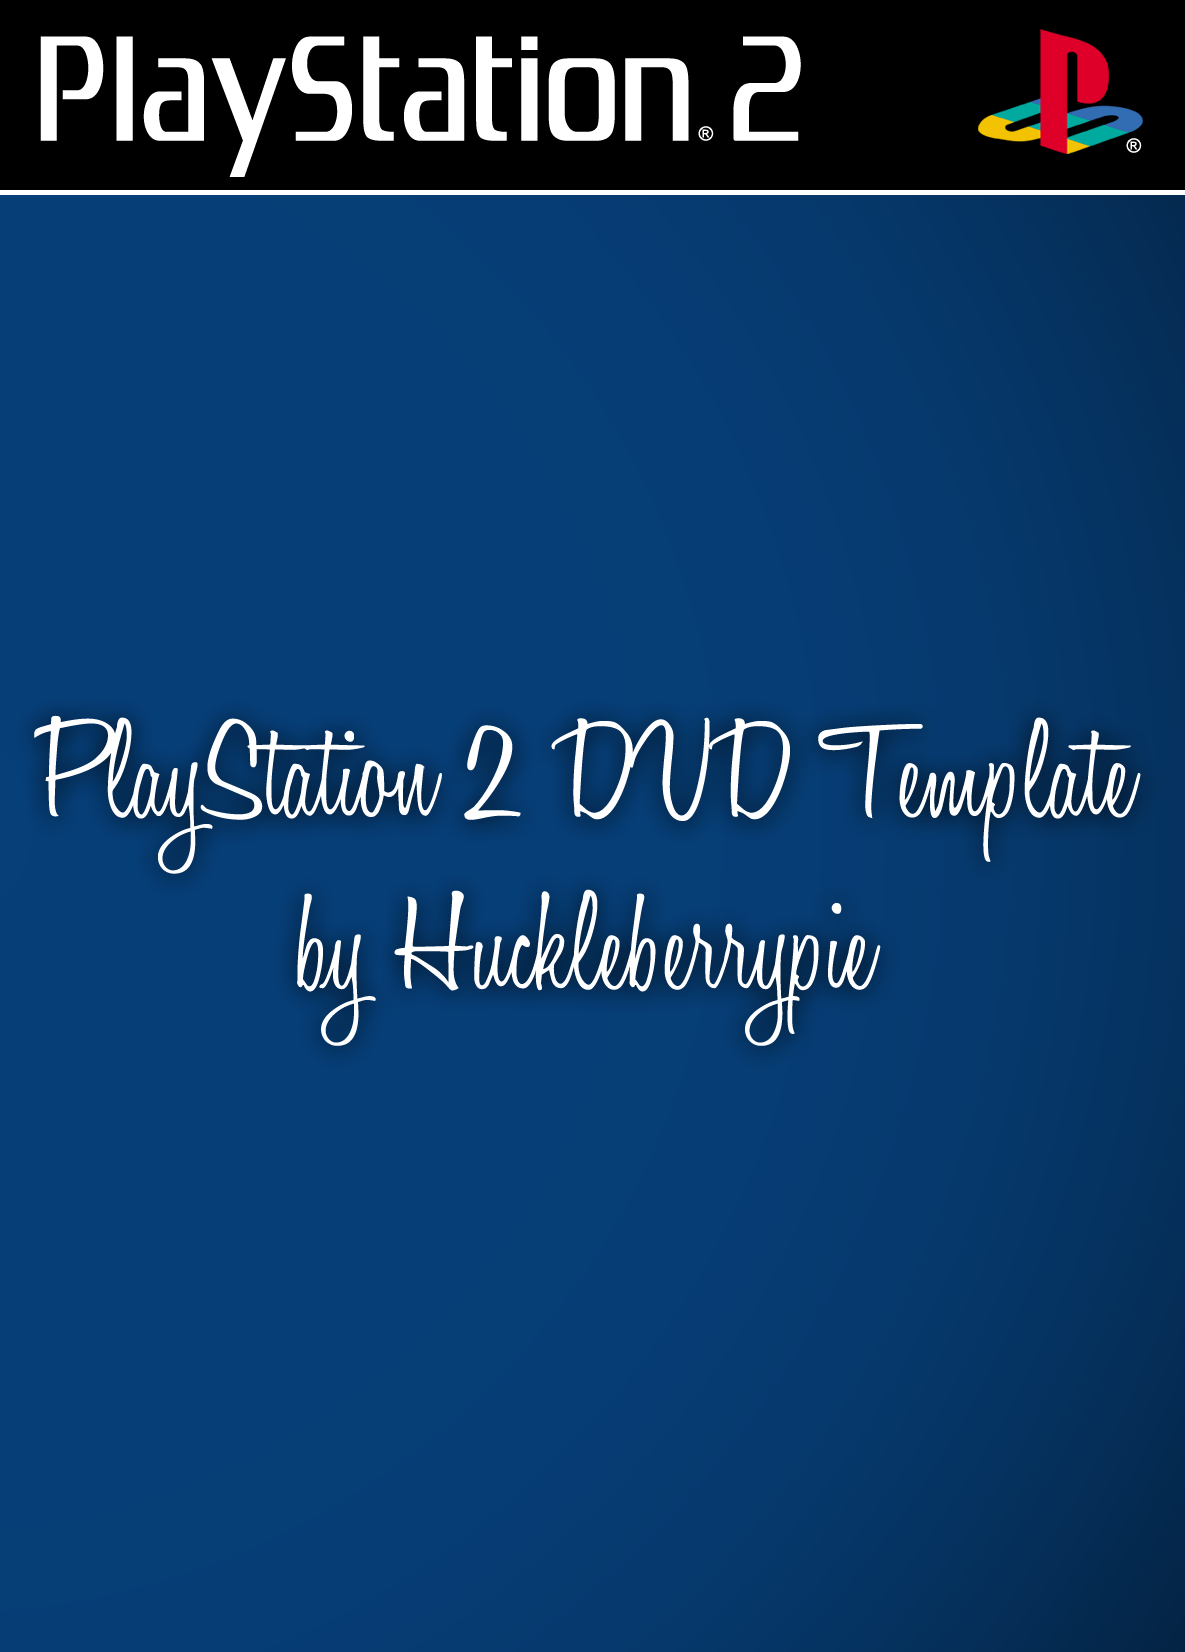 Playstation 2 dvd template by huckleberrypie on deviantart playstation 2 dvd template by huckleberrypie playstation 2 dvd template by huckleberrypie maxwellsz